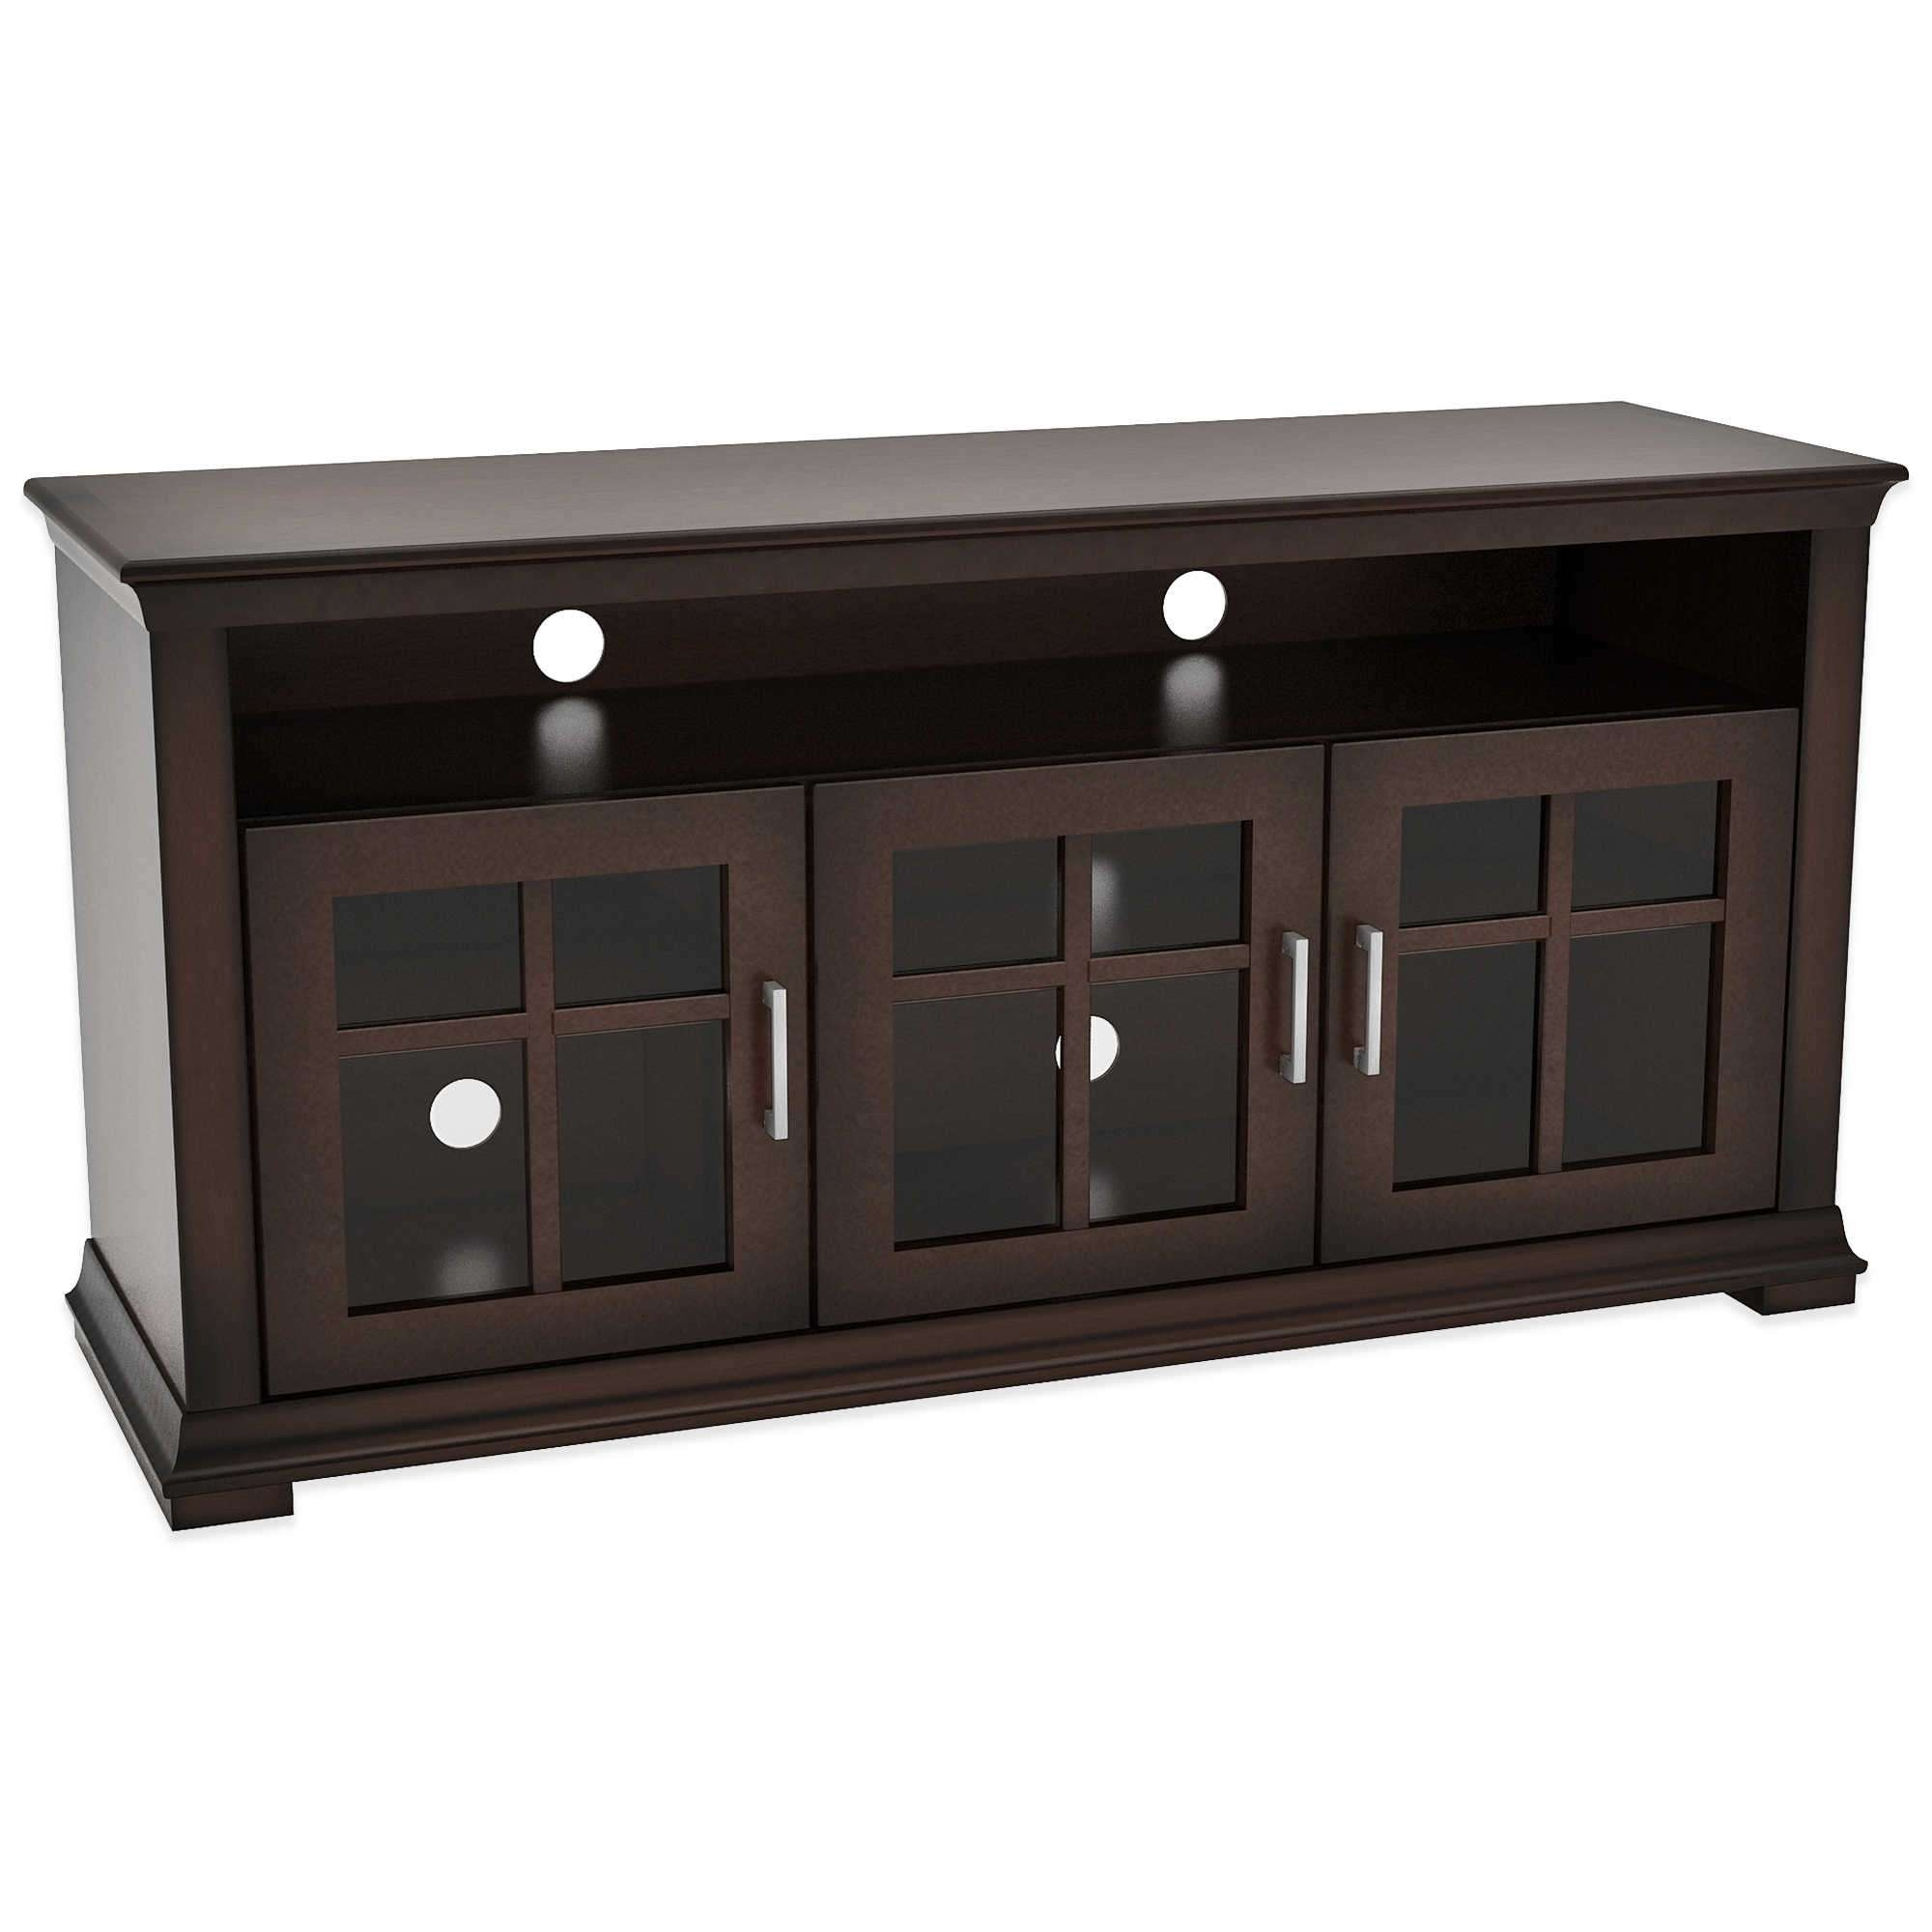 Dark Wood Tv Cabinet With Doors | Eo Furniture Regarding Dark Wood Tv Stands (View 6 of 15)